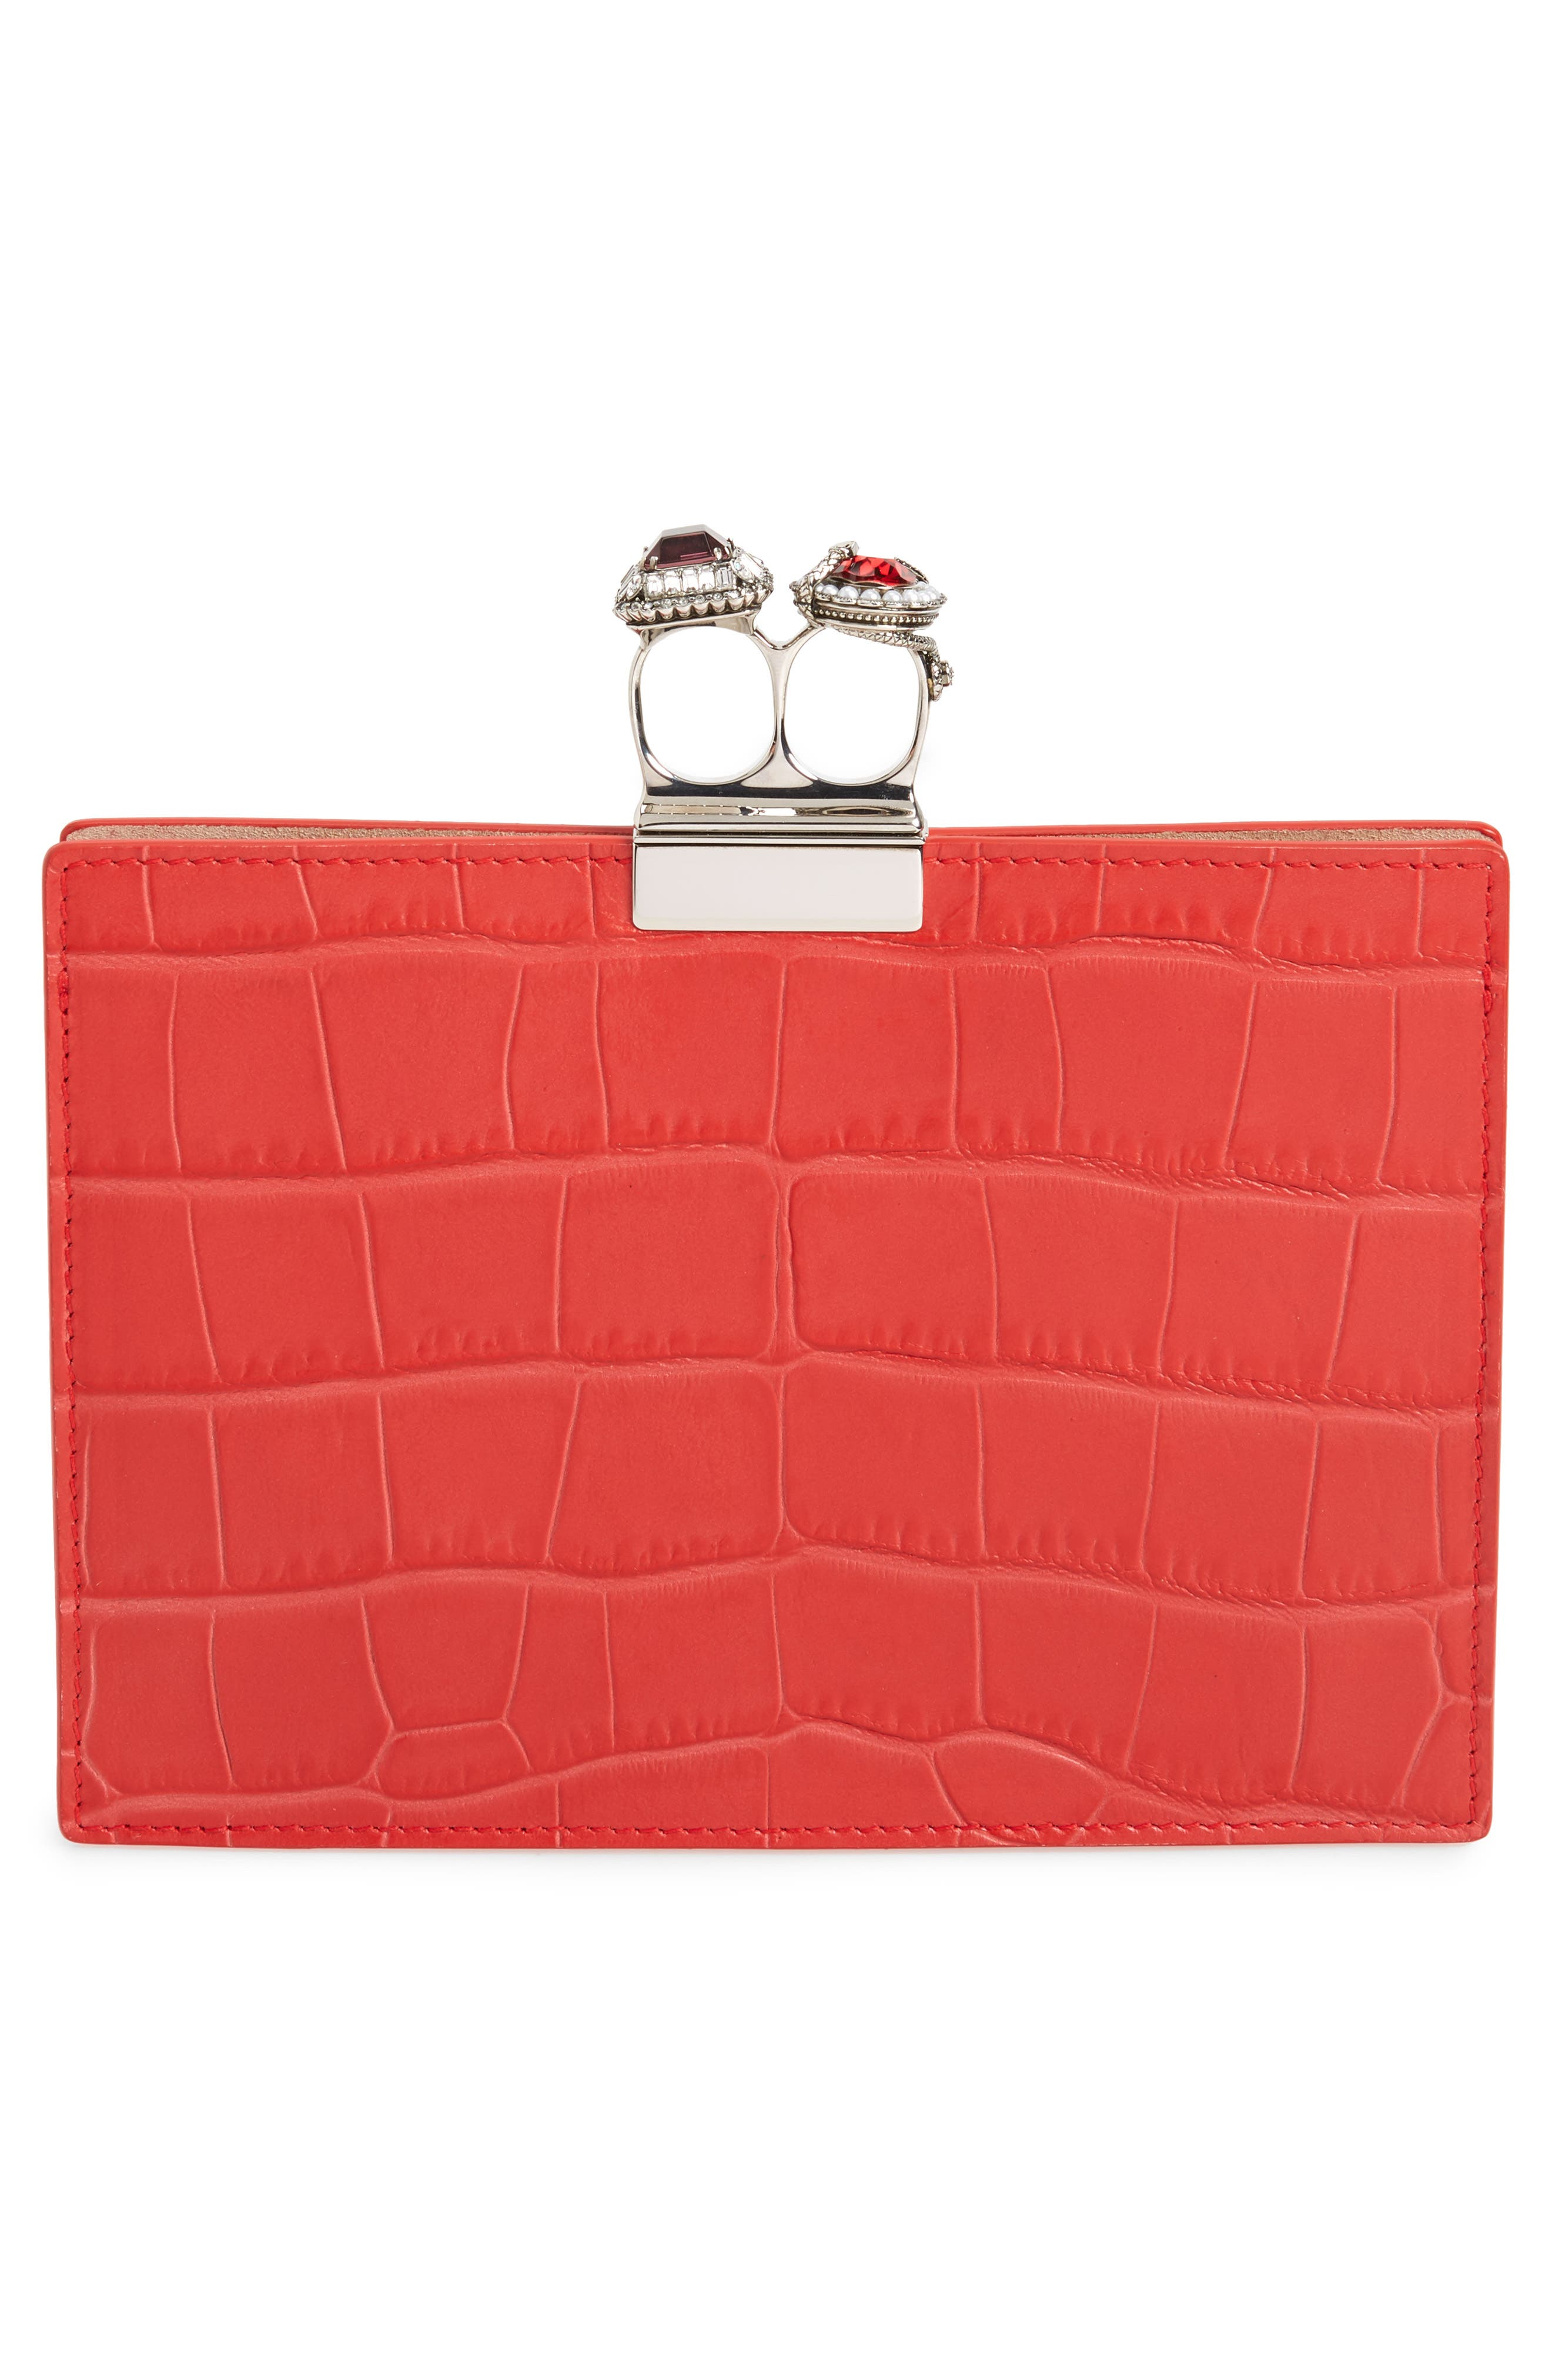 Croc Embossed Calfskin Leather Double Ring Clutch,                             Alternate thumbnail 3, color,                             LUST RED